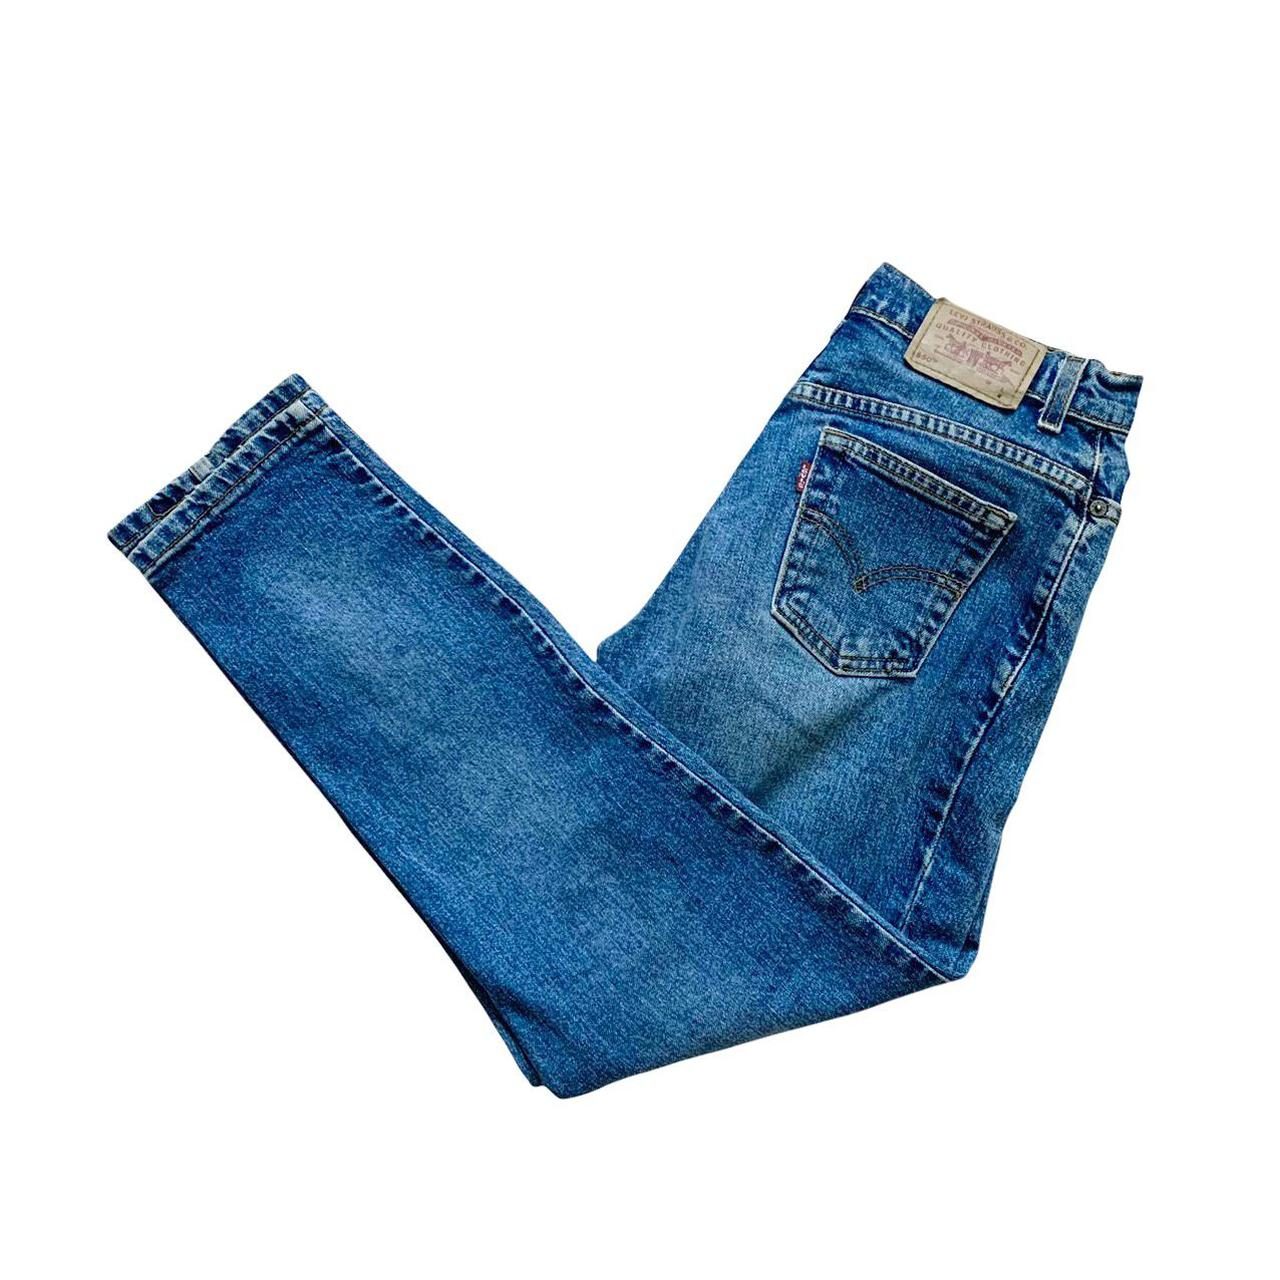 Product Image 1 - Vintage levis 550 high waisted